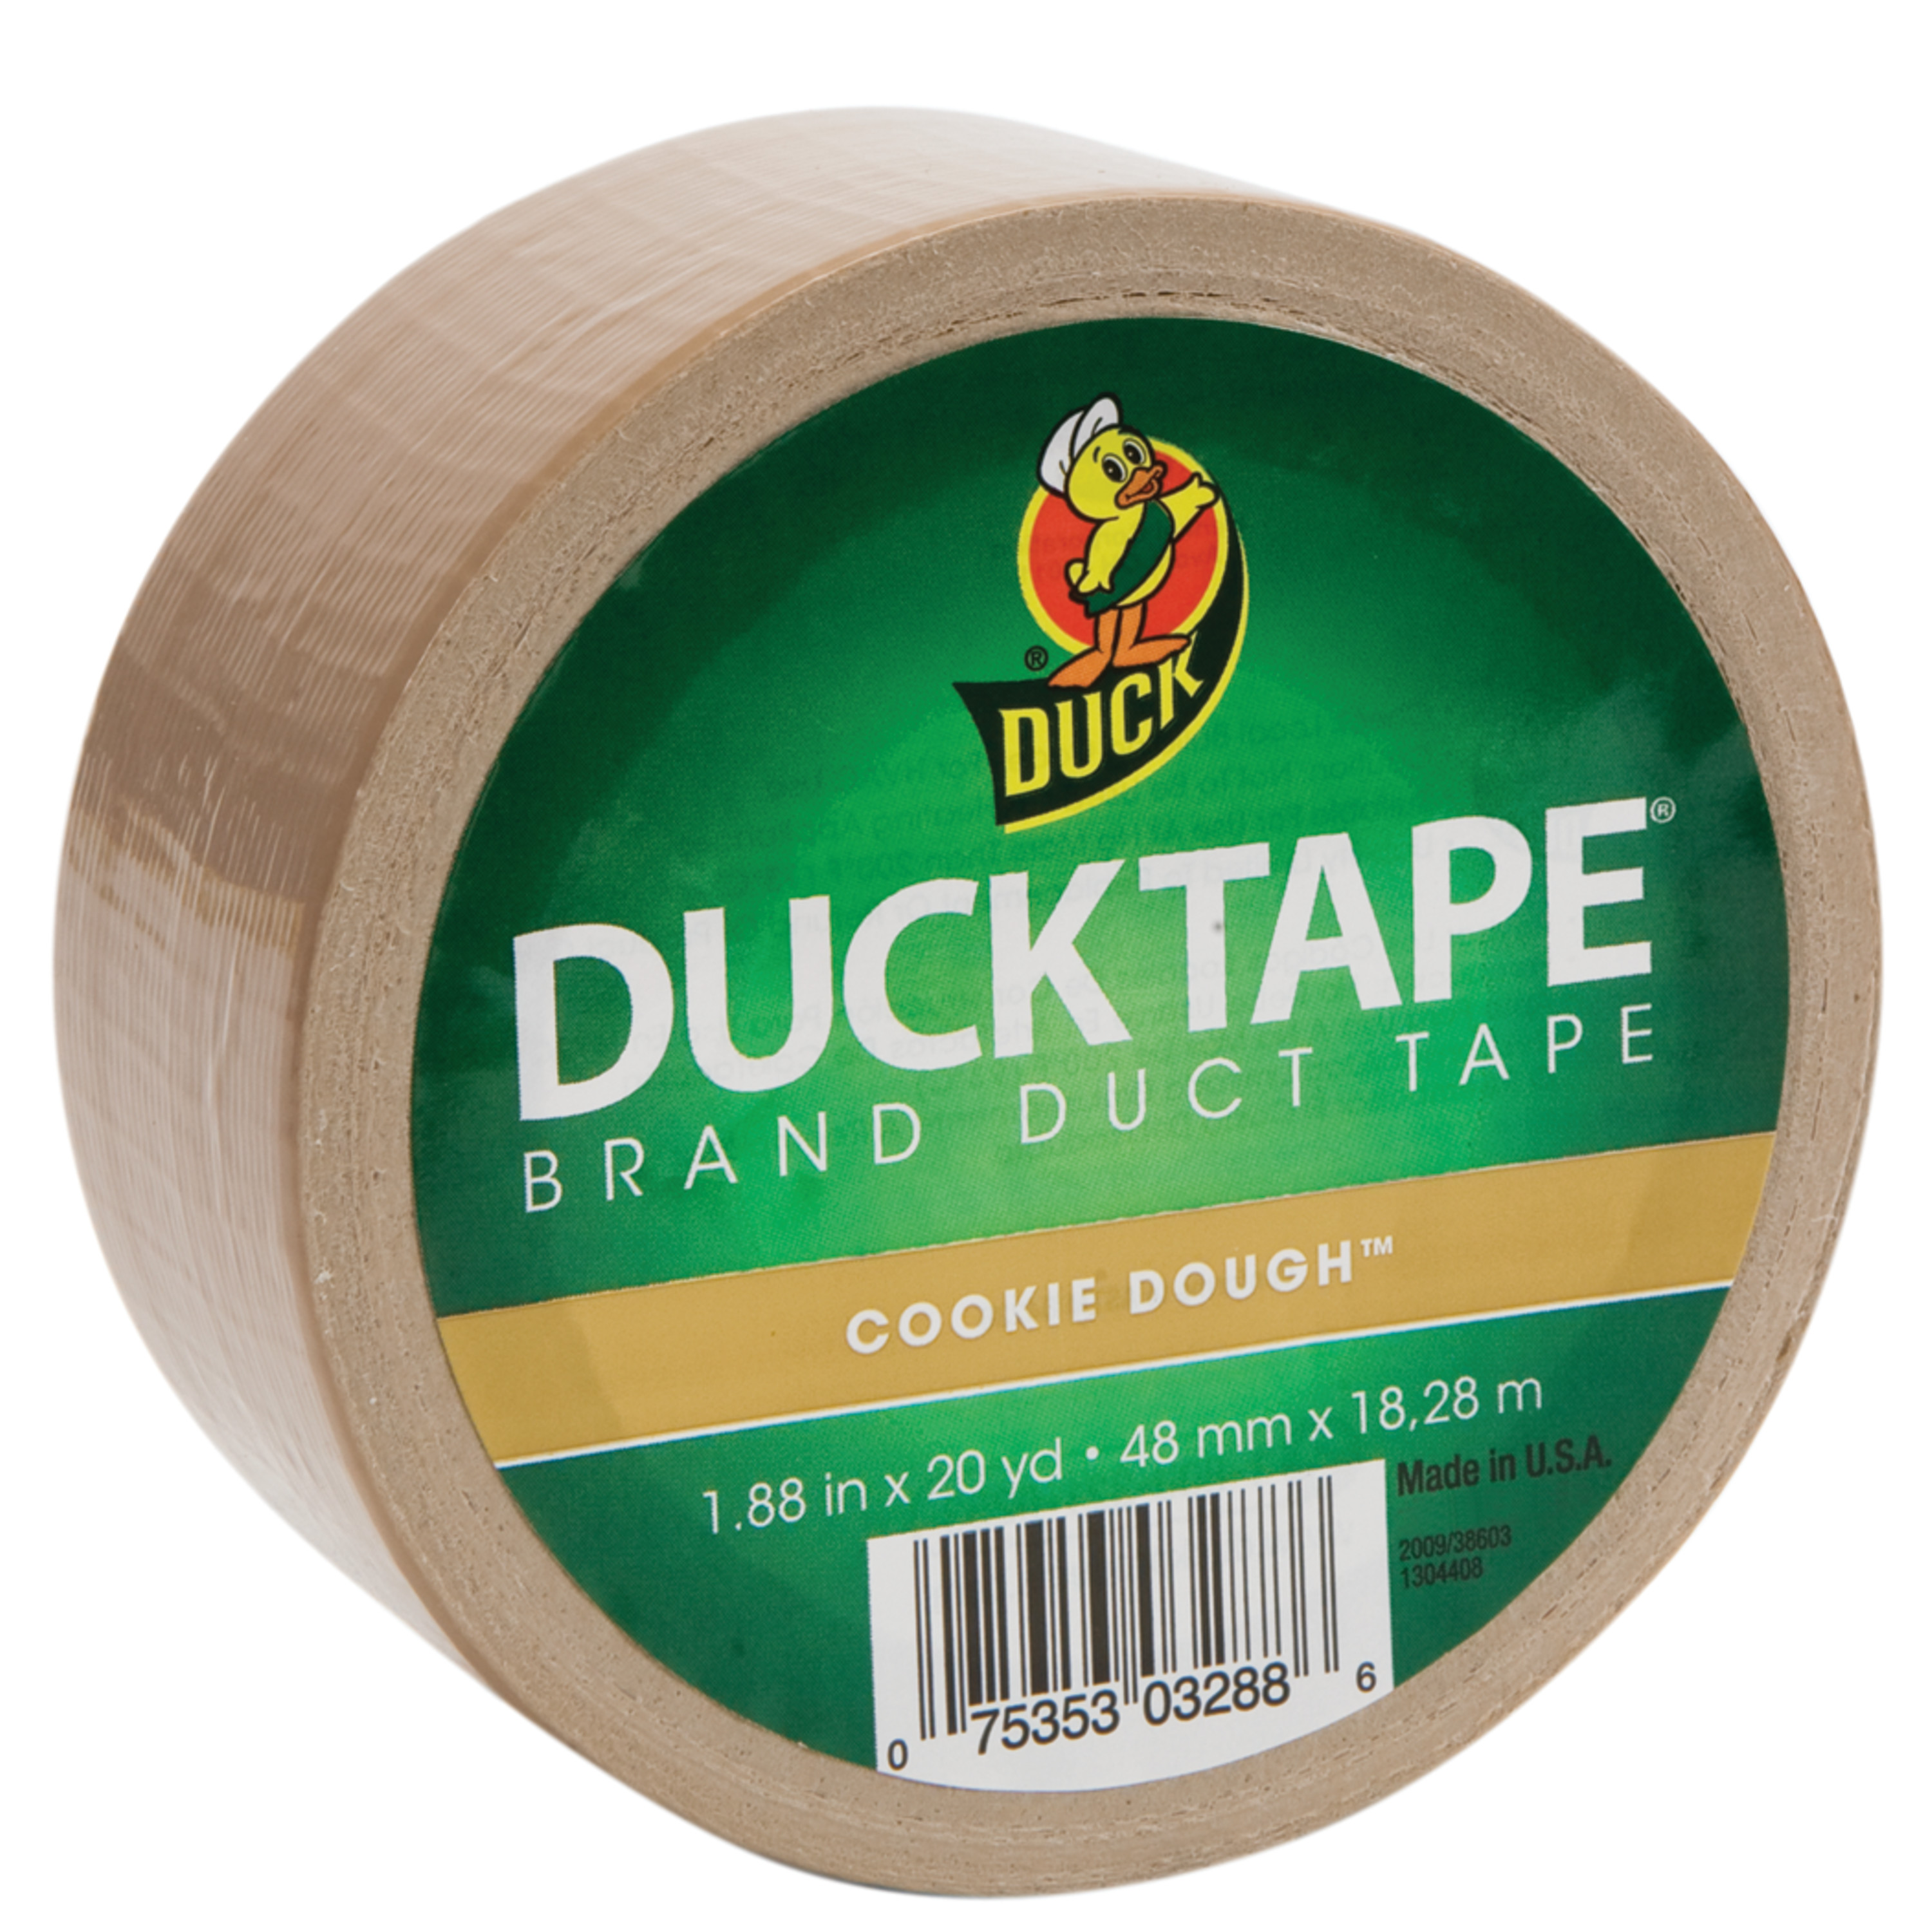 "Duck Tape Solid Color Duck Tape, 1.88"" x 20 yds., Cookie Dough"